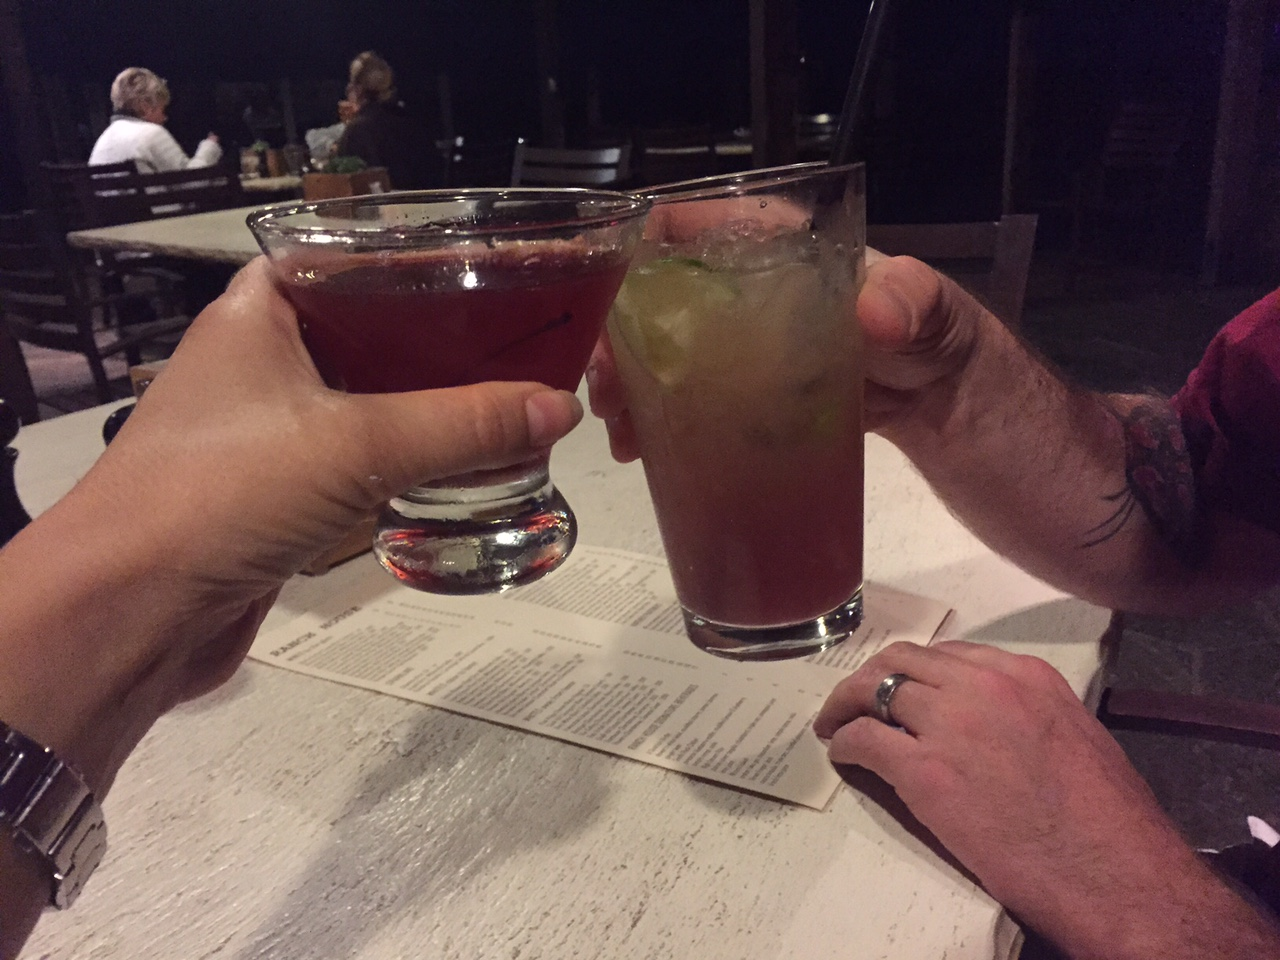 Cheers to our romantic weekend!